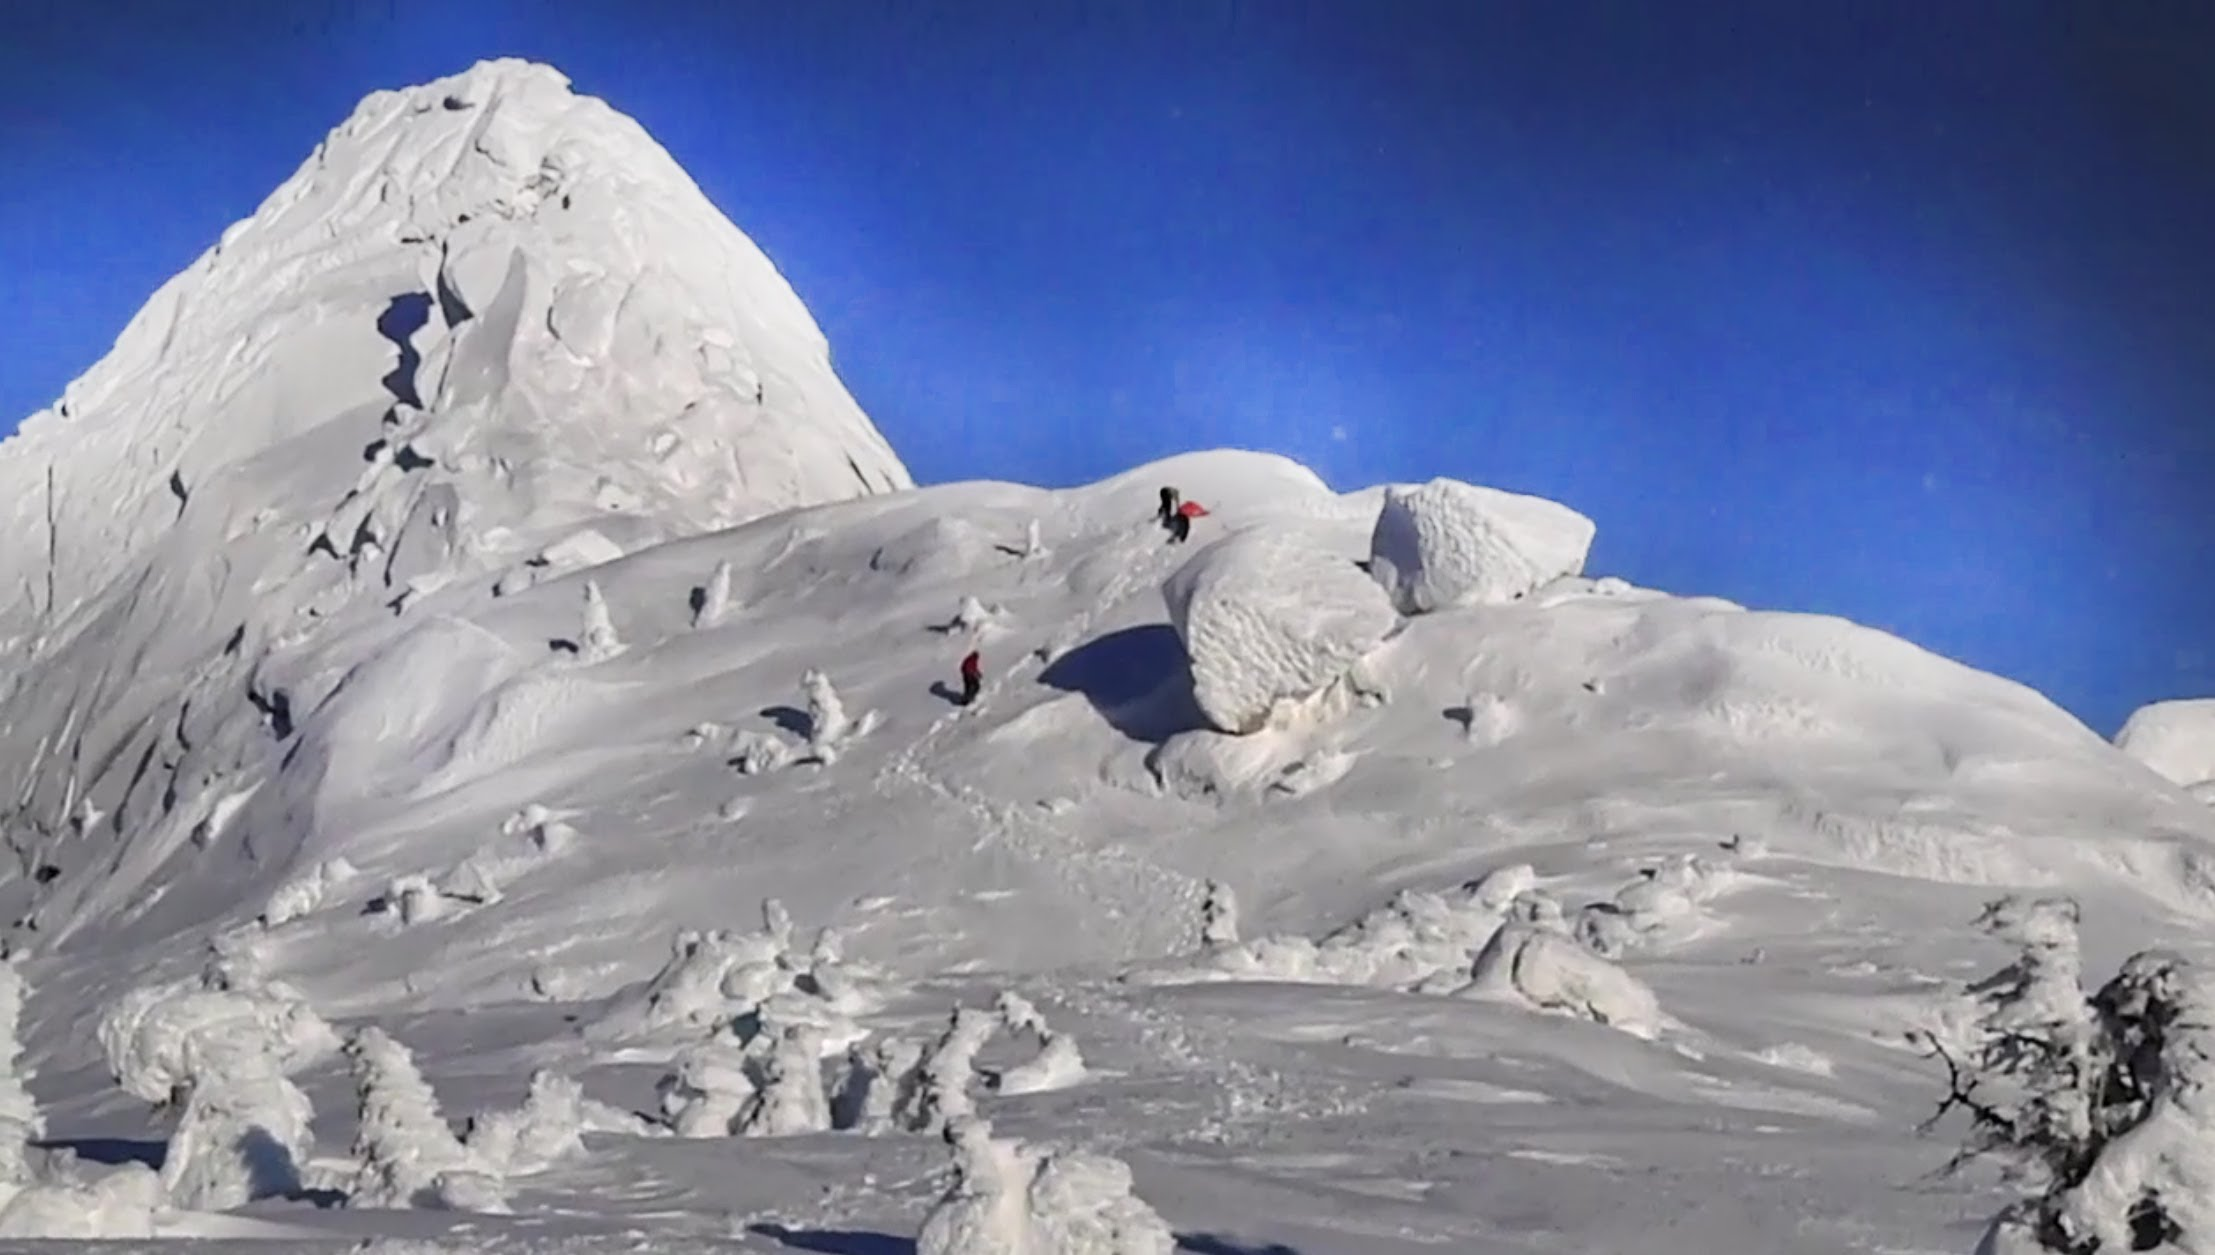 Climbers make their way up White Needle (6420m) in the Indian Himalaya. [Photo] Courtesy of the Indian Mountaineering Foundation